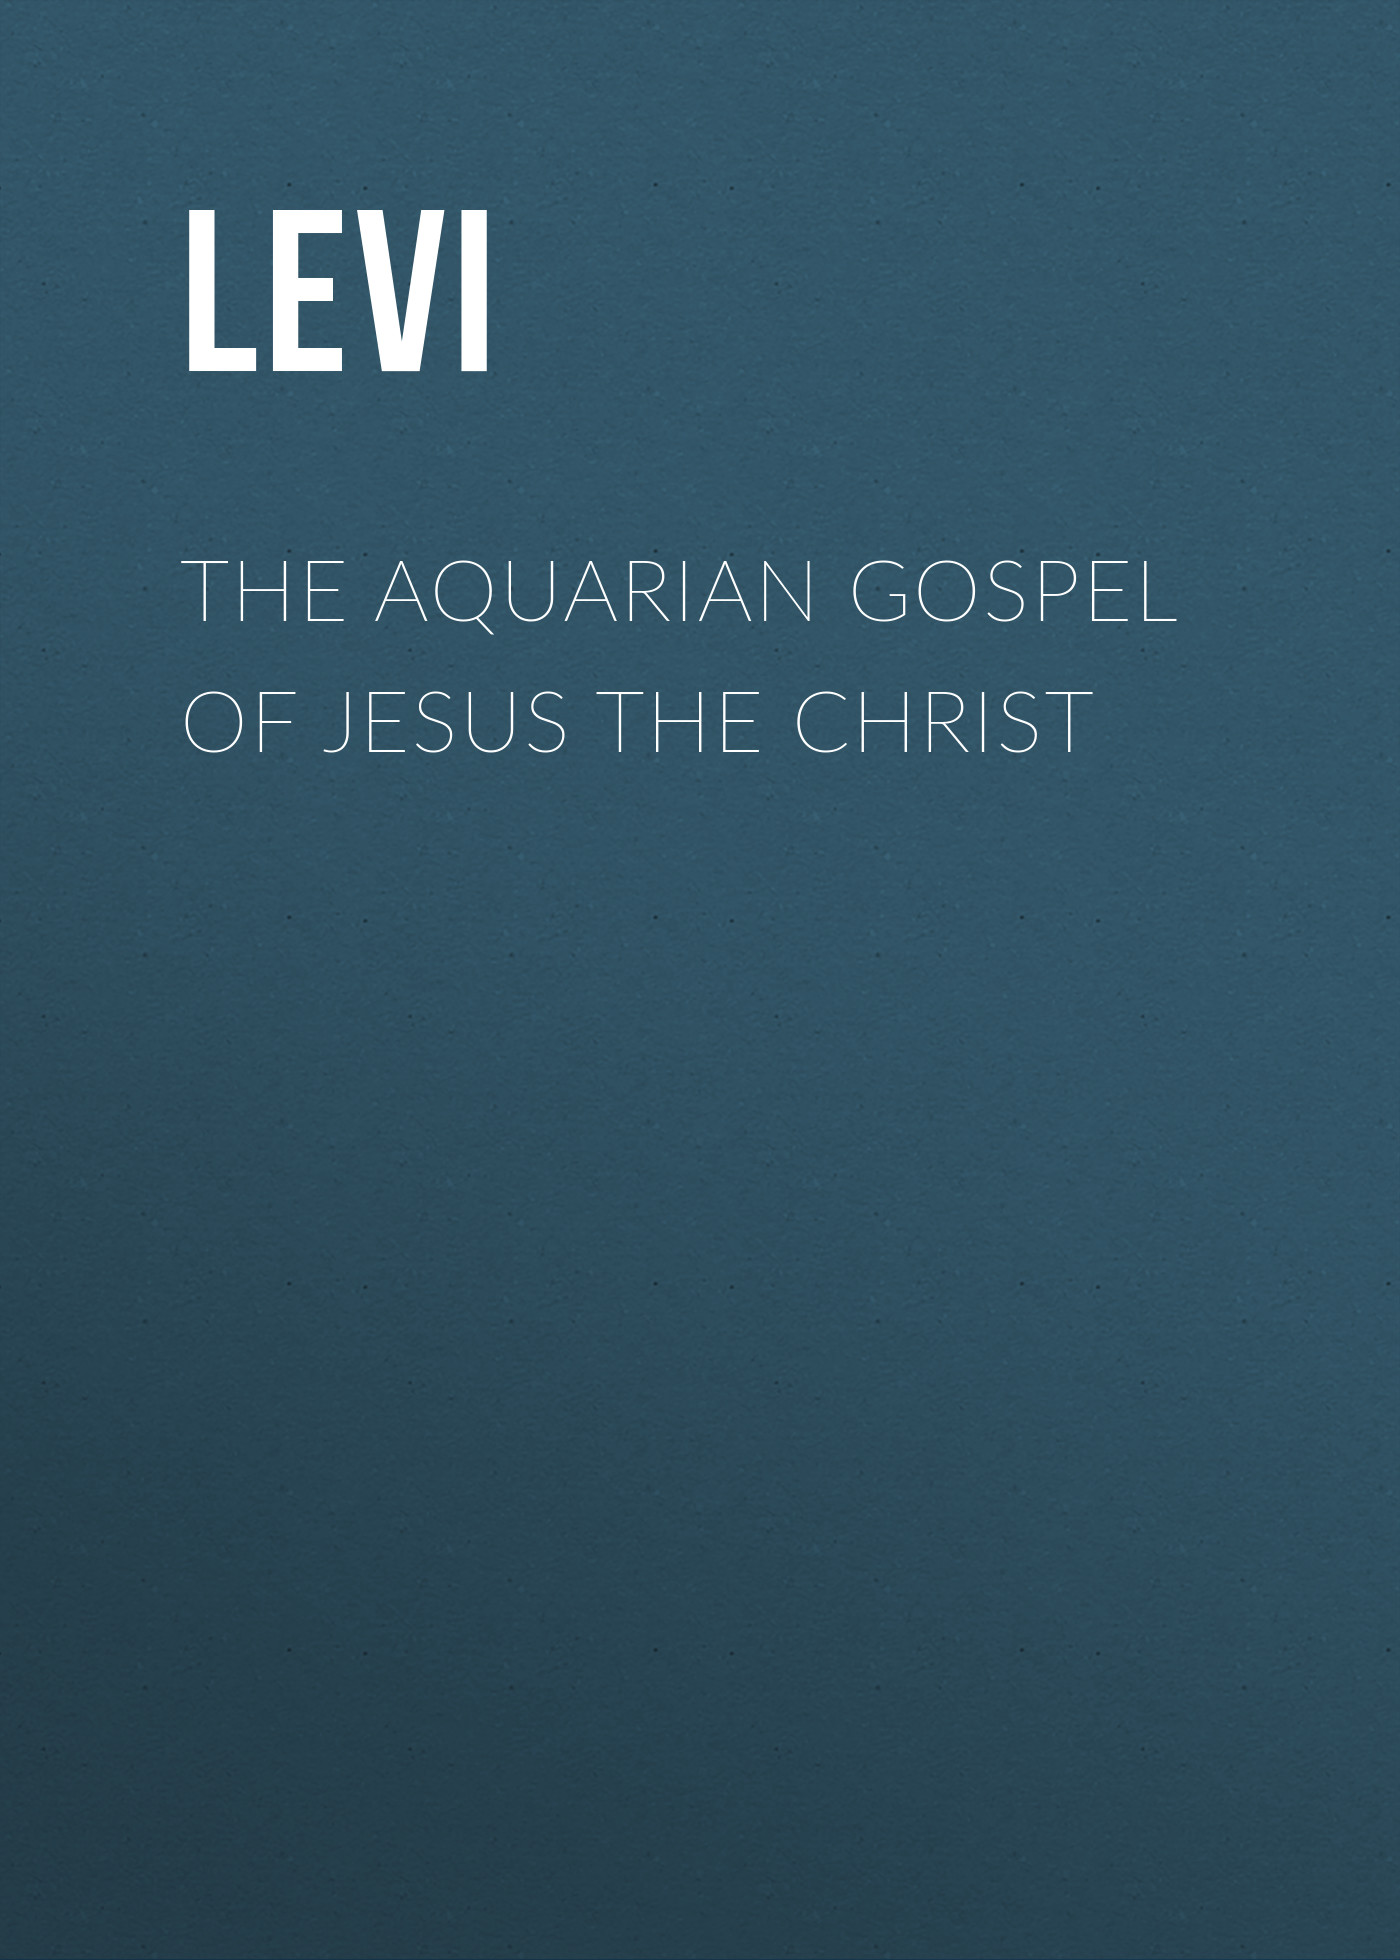 Levi The Aquarian Gospel of Jesus the Christ wireless service calling system paging system for hospital welfare center 1 table button and 1 pc of wrist watch receiver